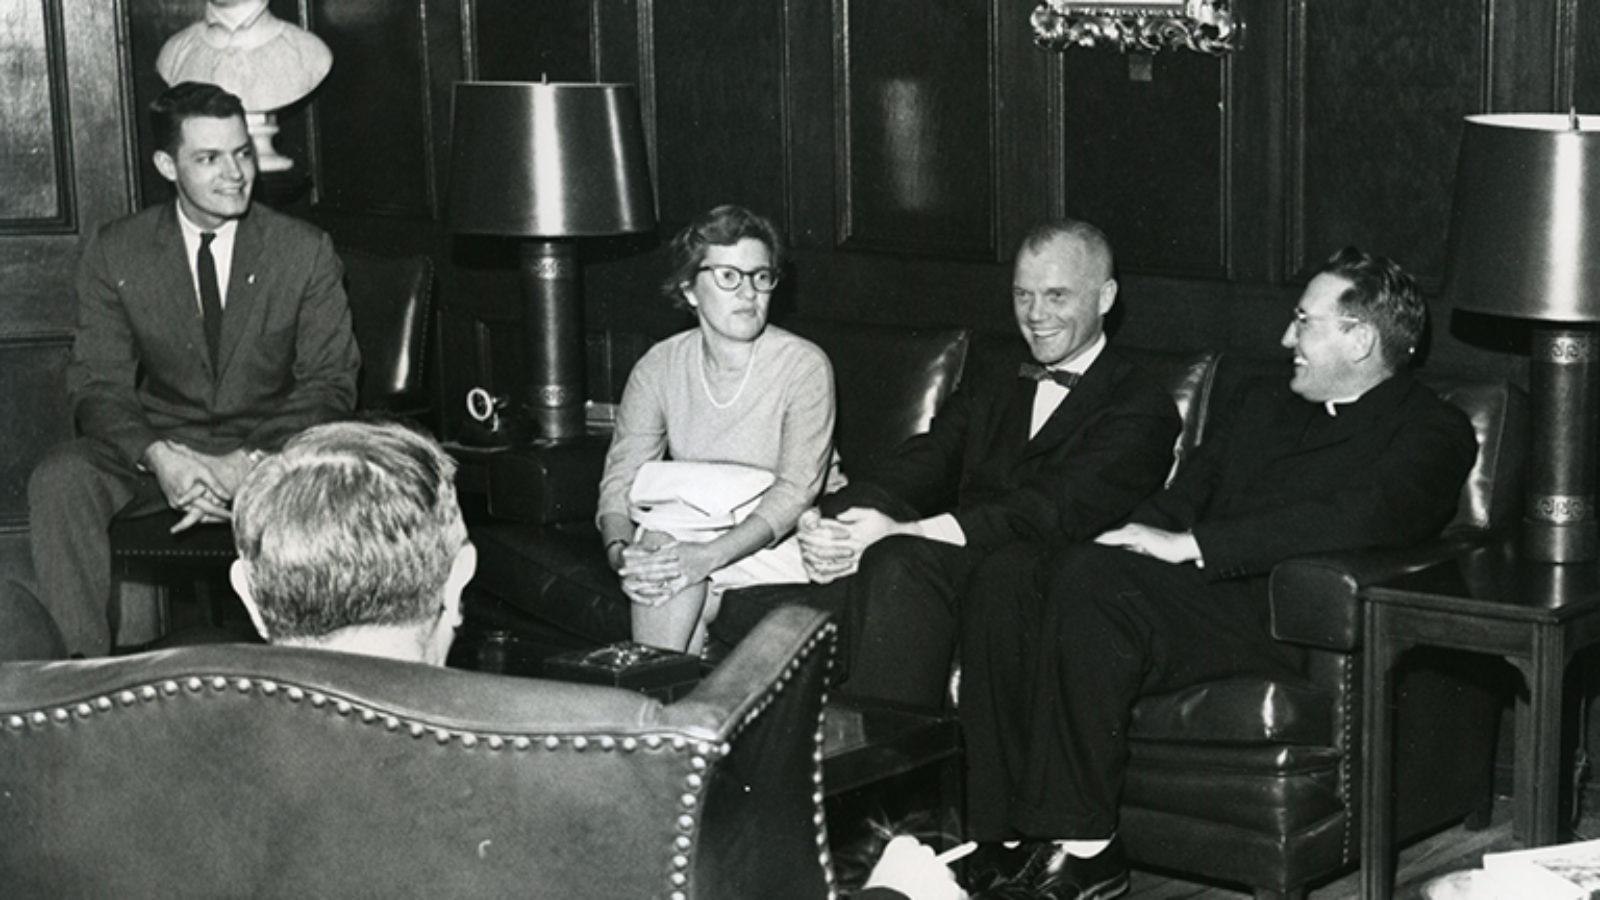 Vera Rubin with John Glenn and other men sitting around in chairs